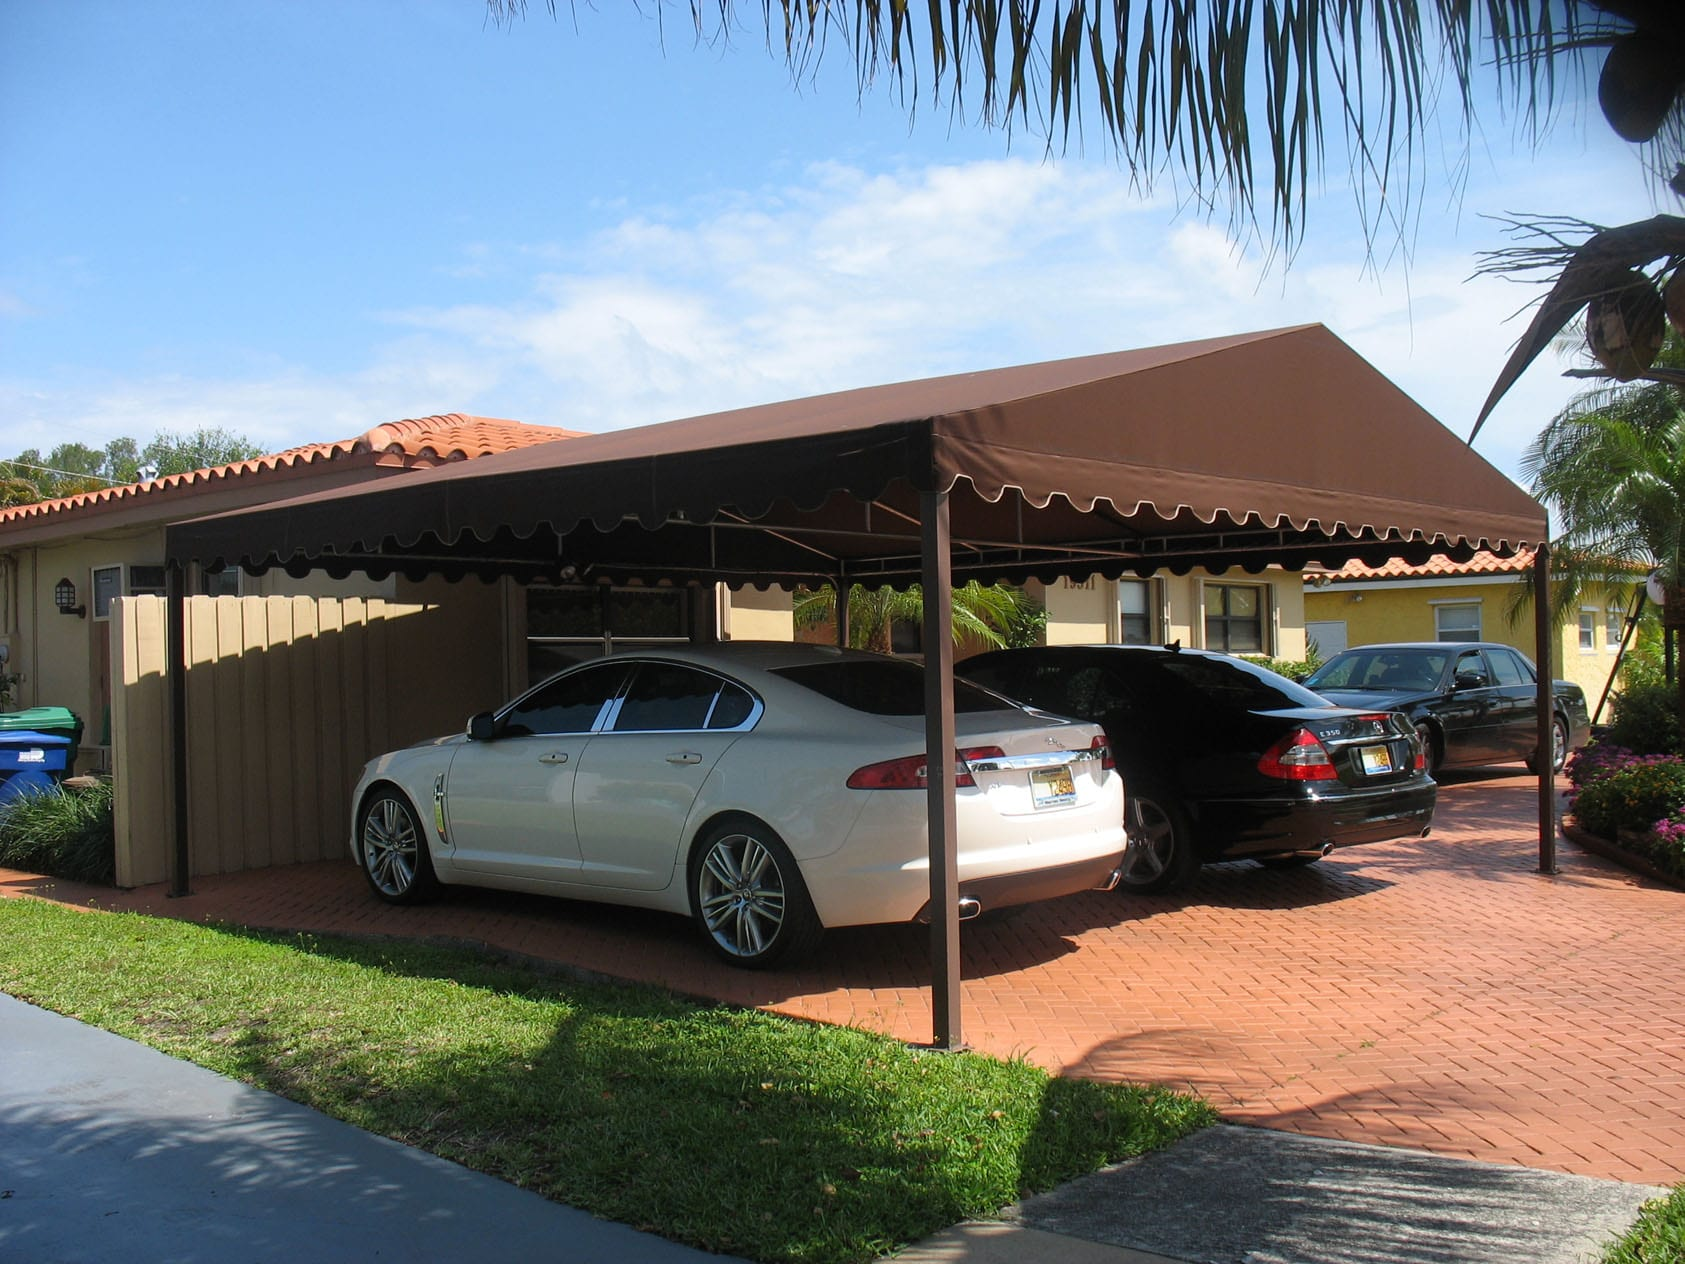 Carport Awnings Product : Most recommended awning company in south florida